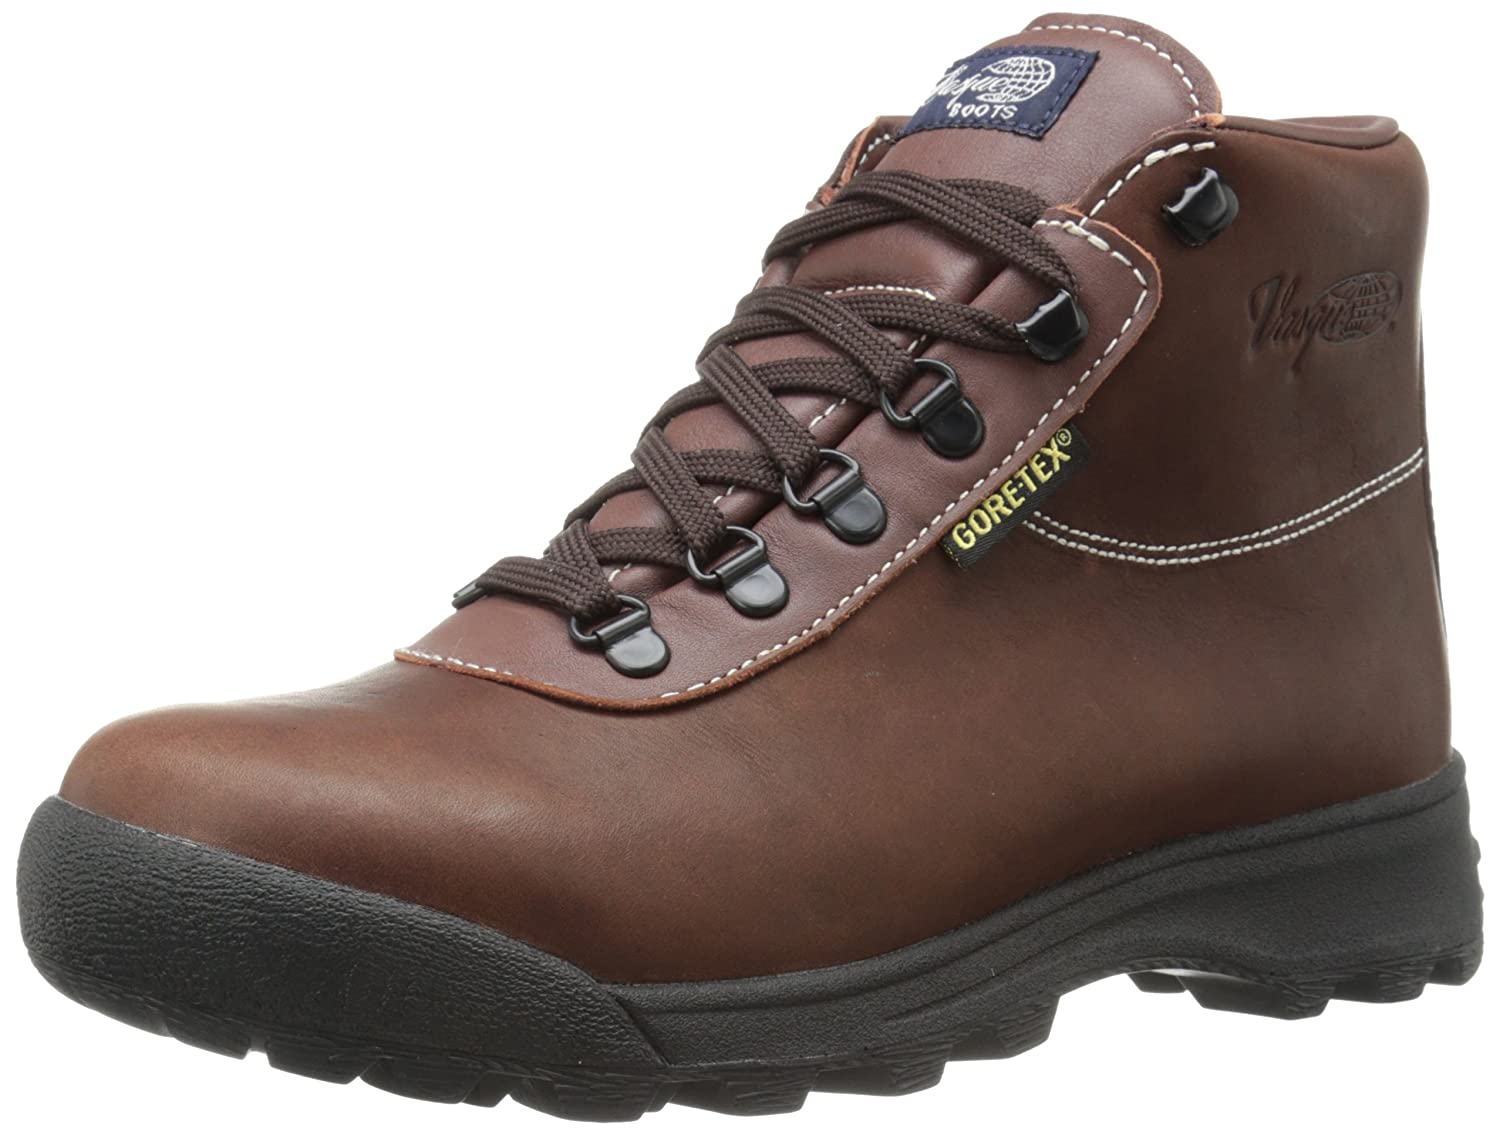 Vasque sundowner gore-tex backpacking boot